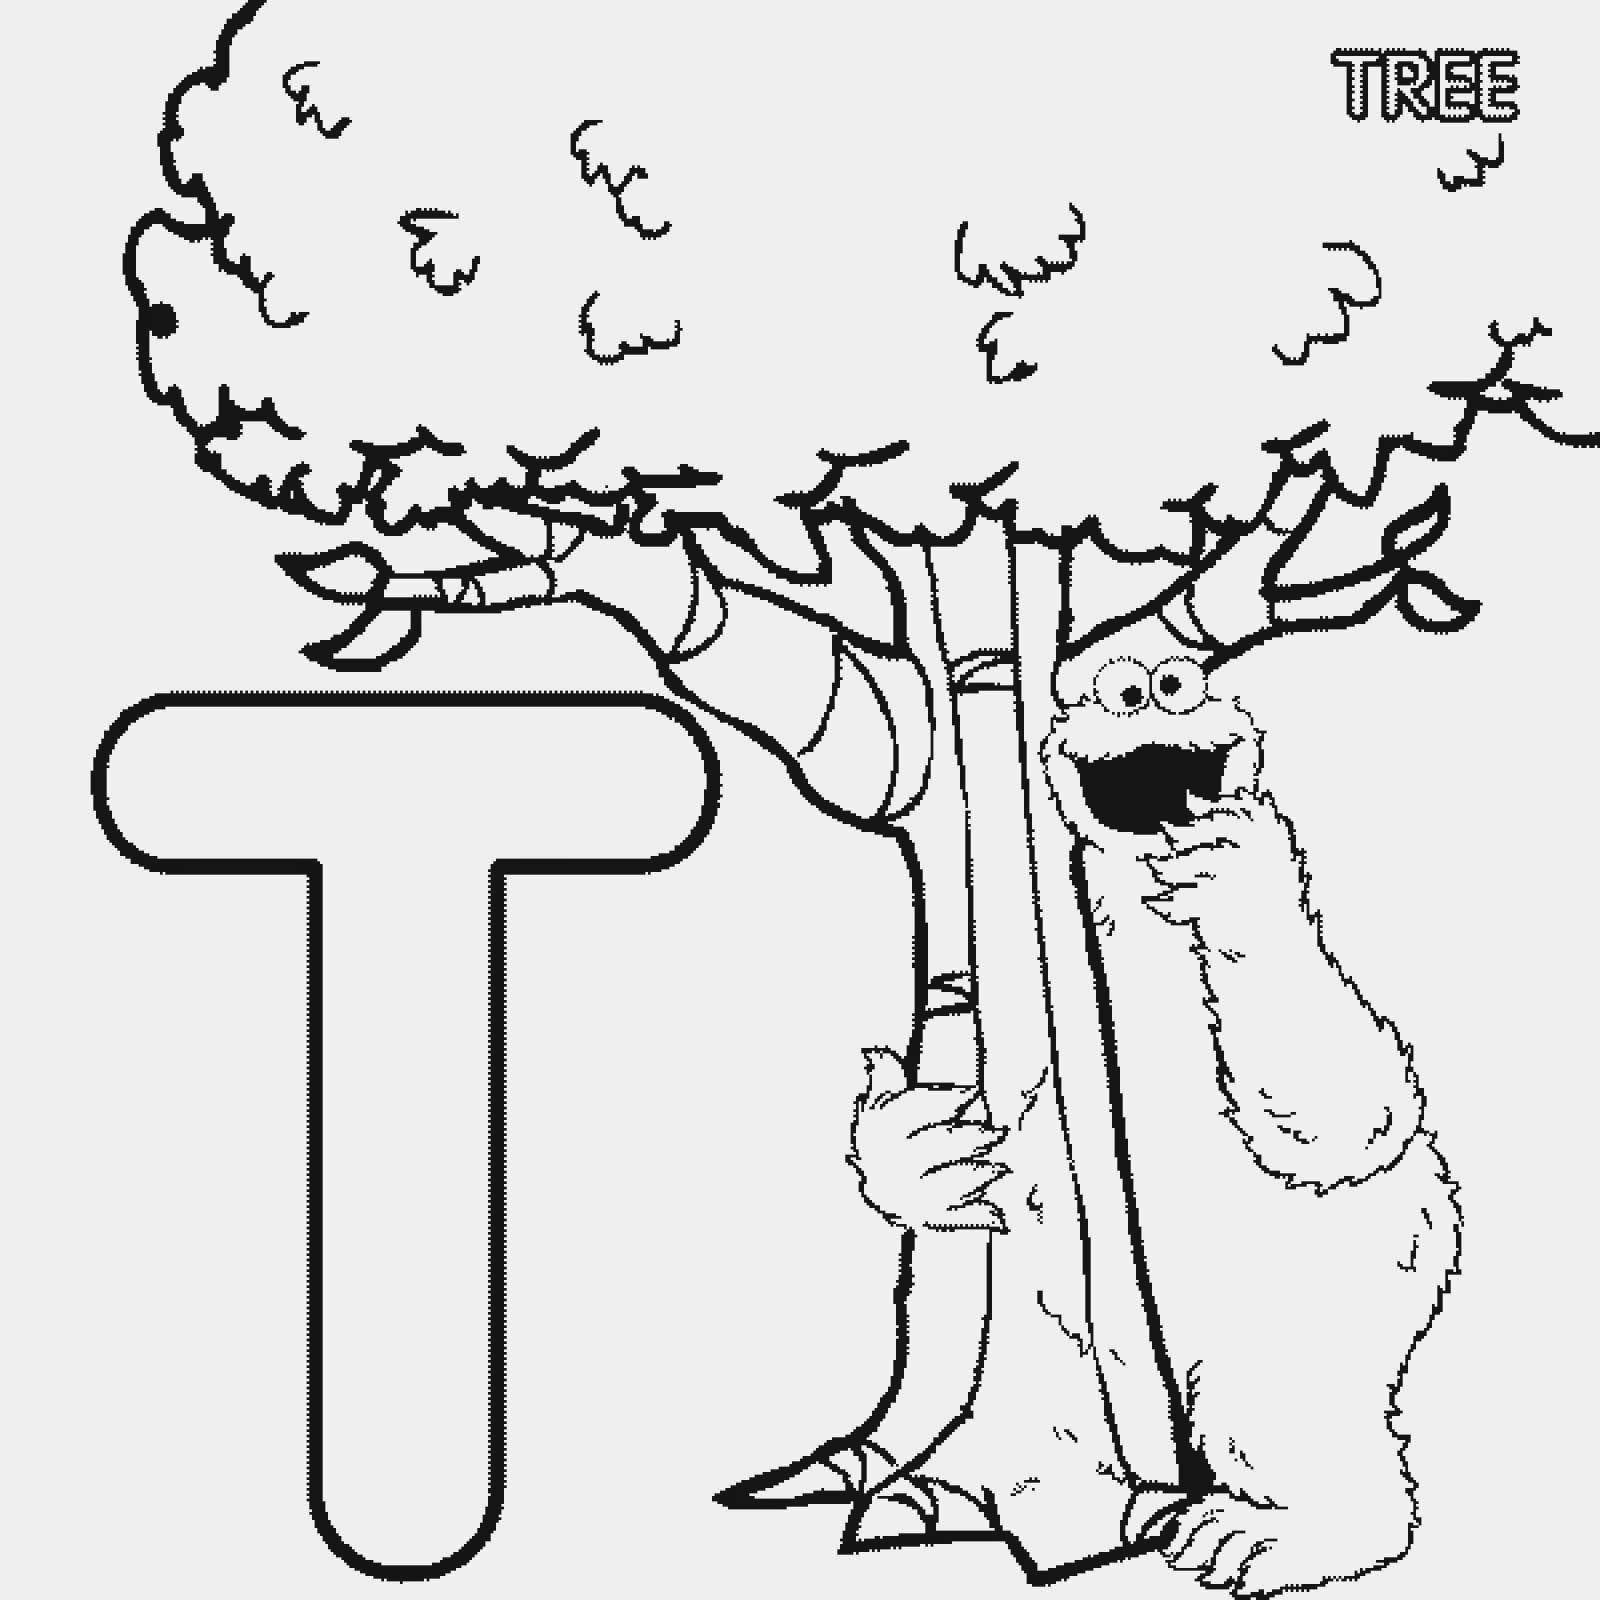 u coloring page - printable coloring pages